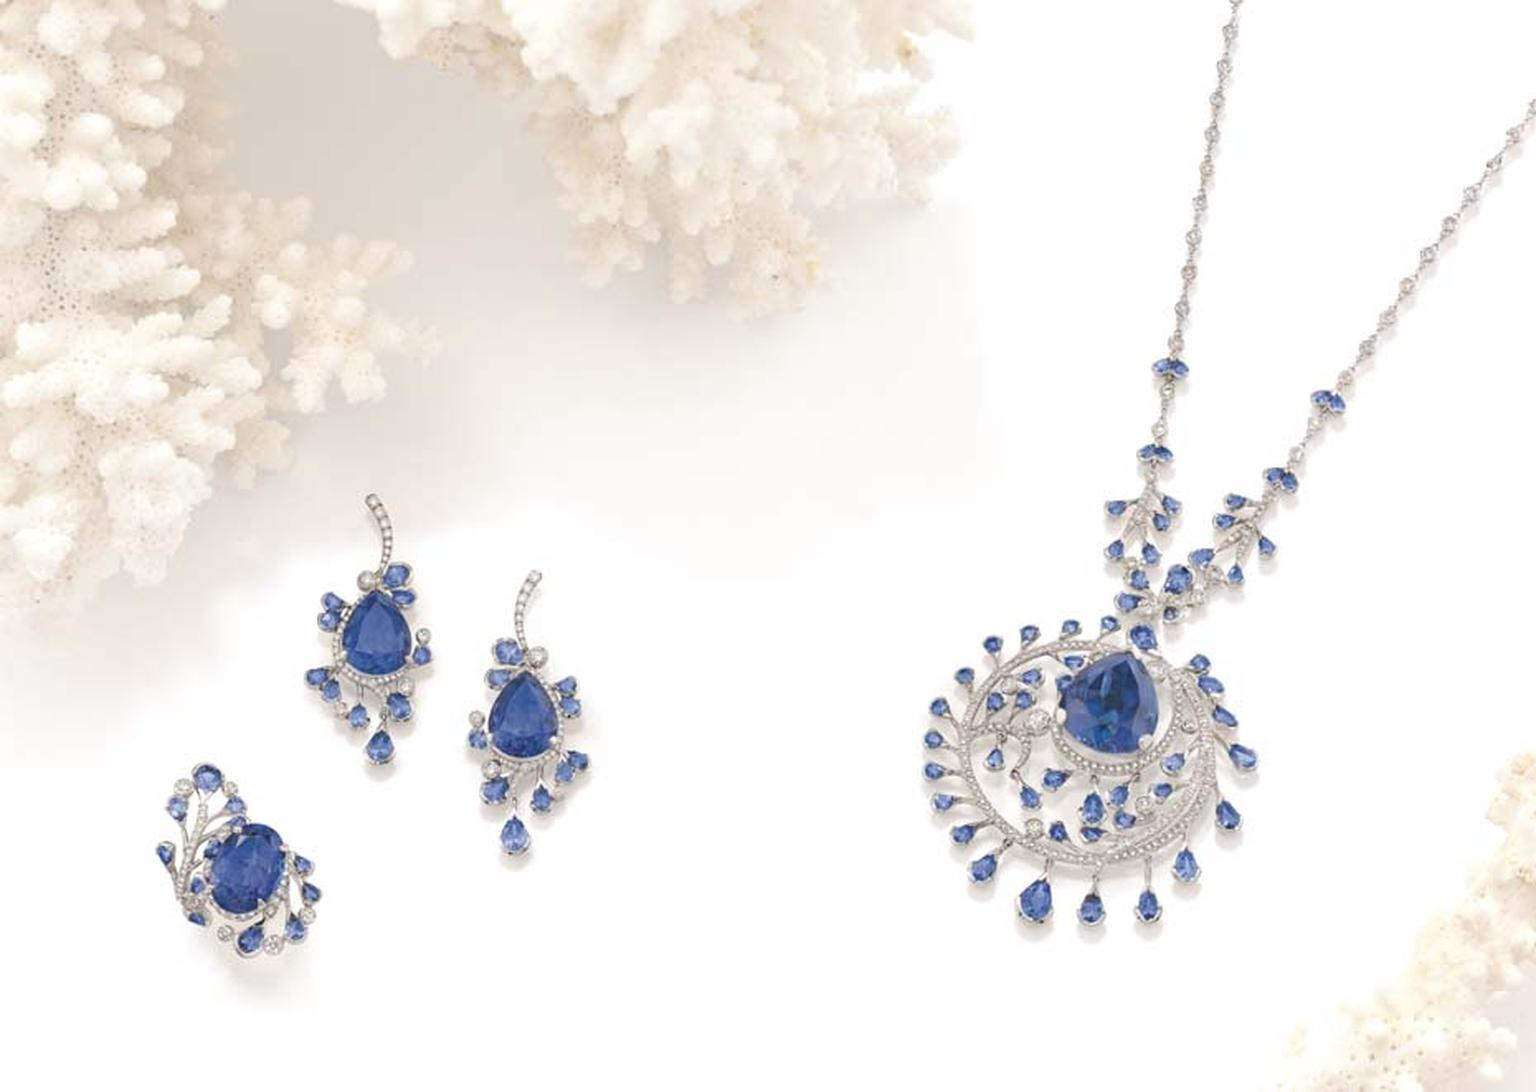 Boodles Ocean of Dreams suite with tanzanite and diamonds, from the new 'Ocean of Dreams' collection.